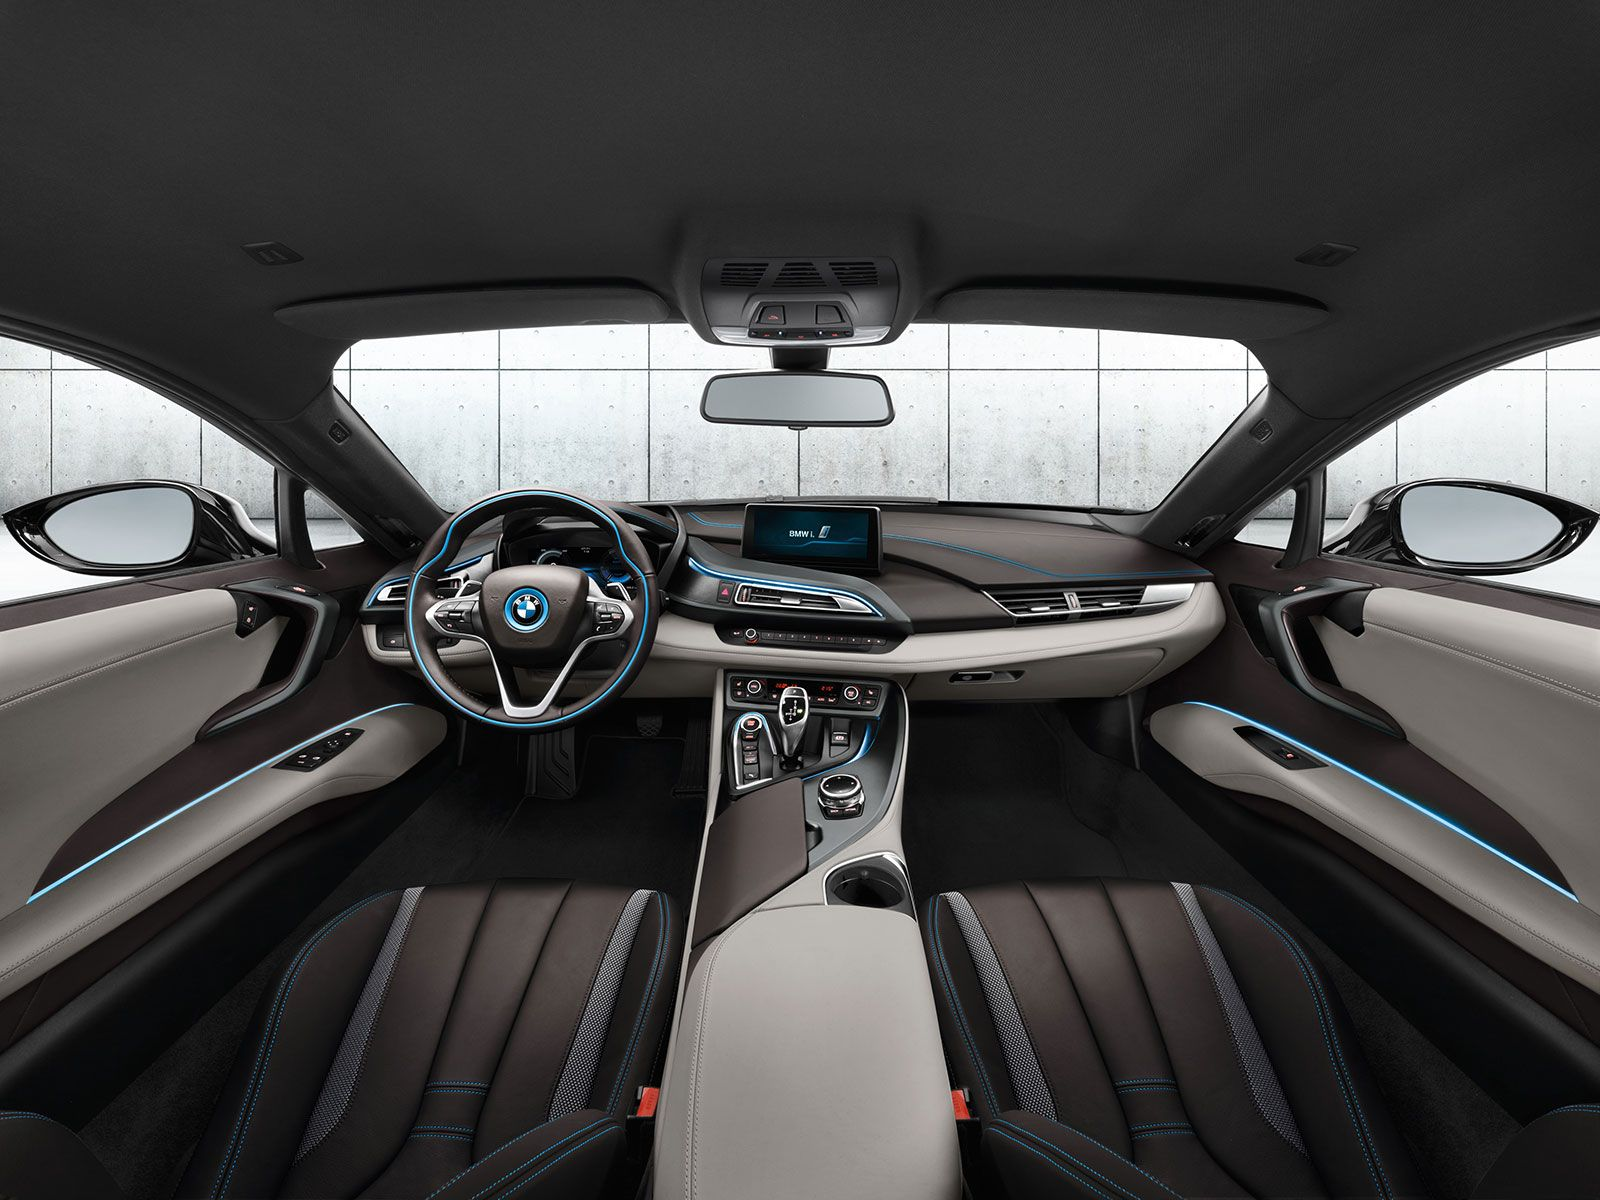 Bmw I8 Interior Cars Bikes Pinterest Bmw I8 Bmw And Cars